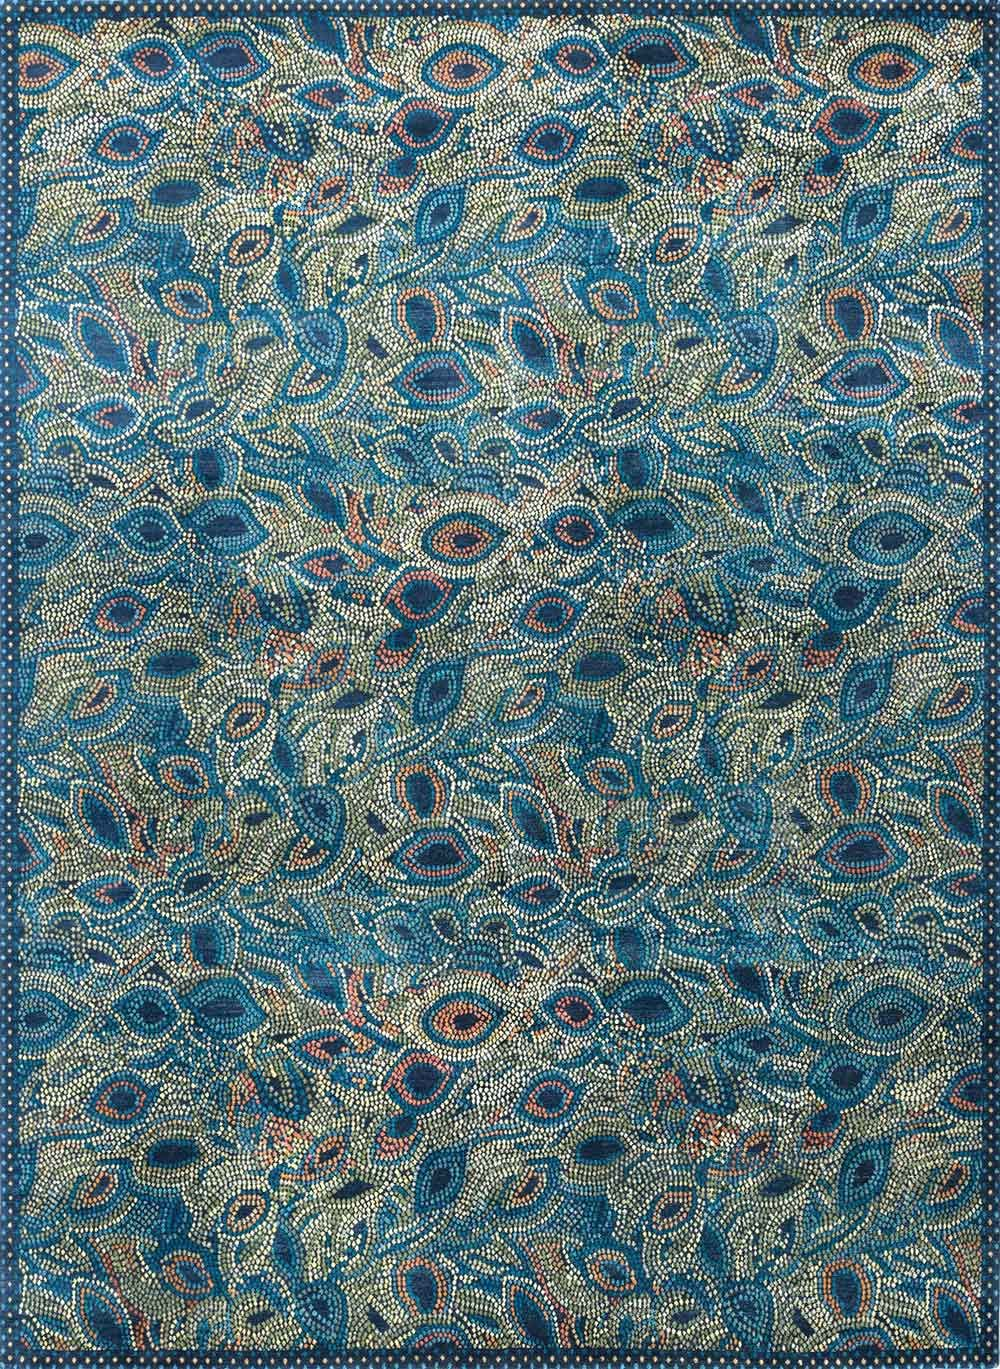 2014 New Moon Carpet Design Peacock Feathers Peacock